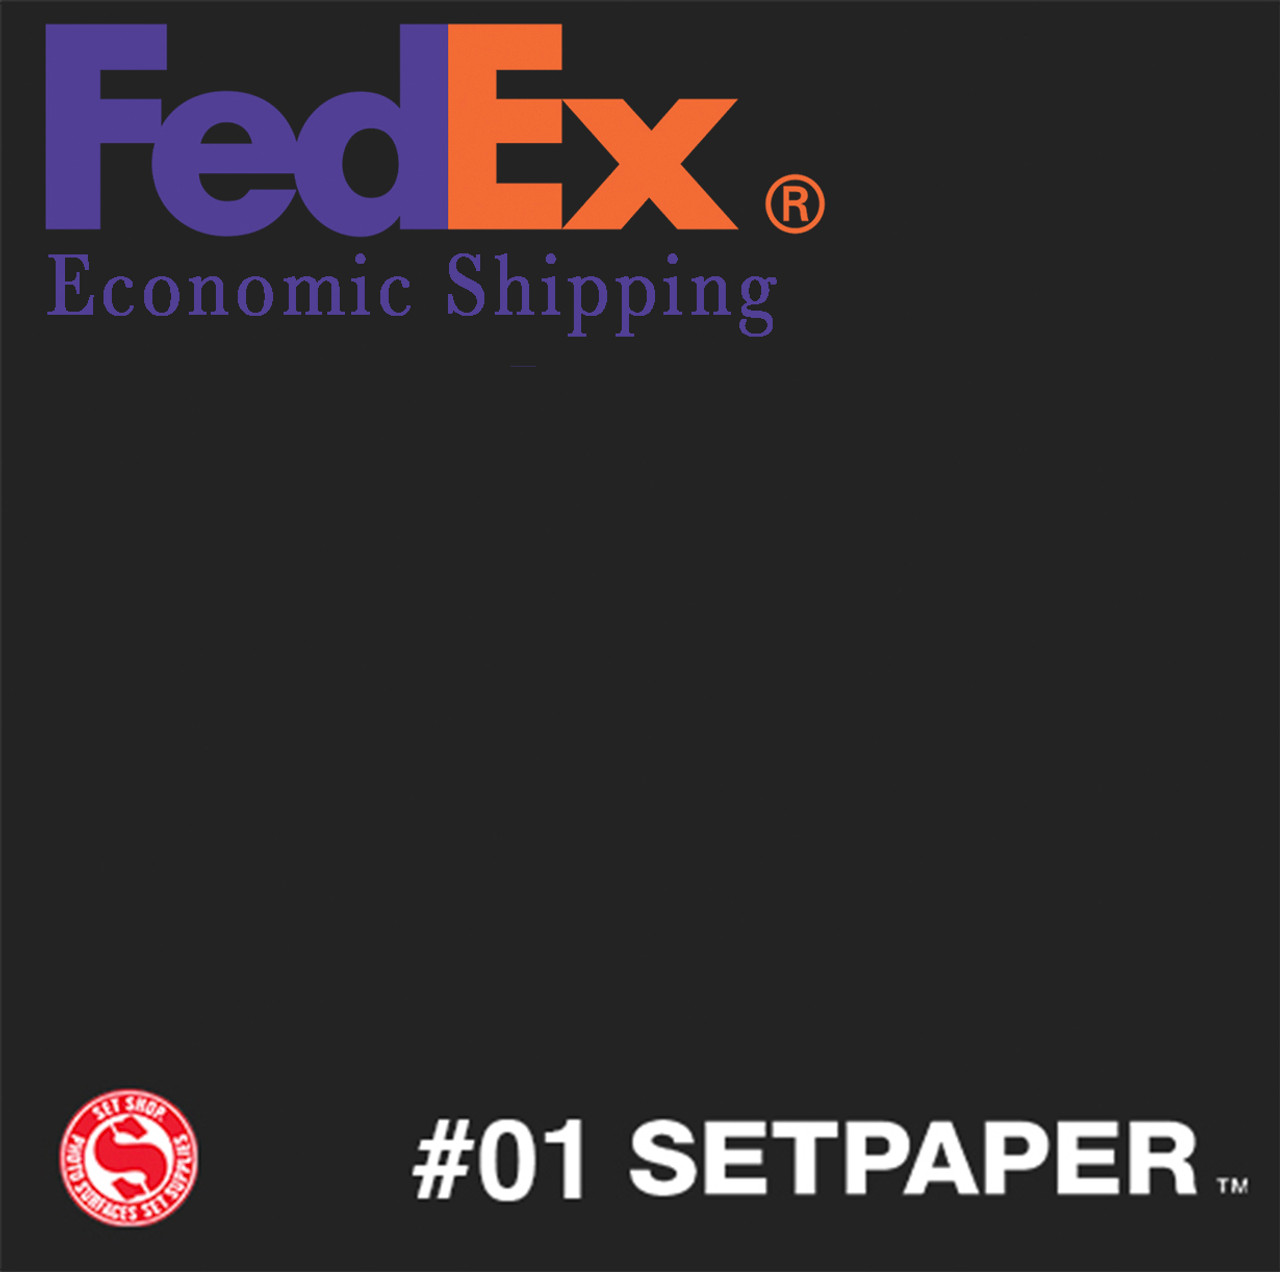 "(ECONOMIC SHIPPING) SETPAPER - BLACK 48"" x 36' (1.2 x 11m)"